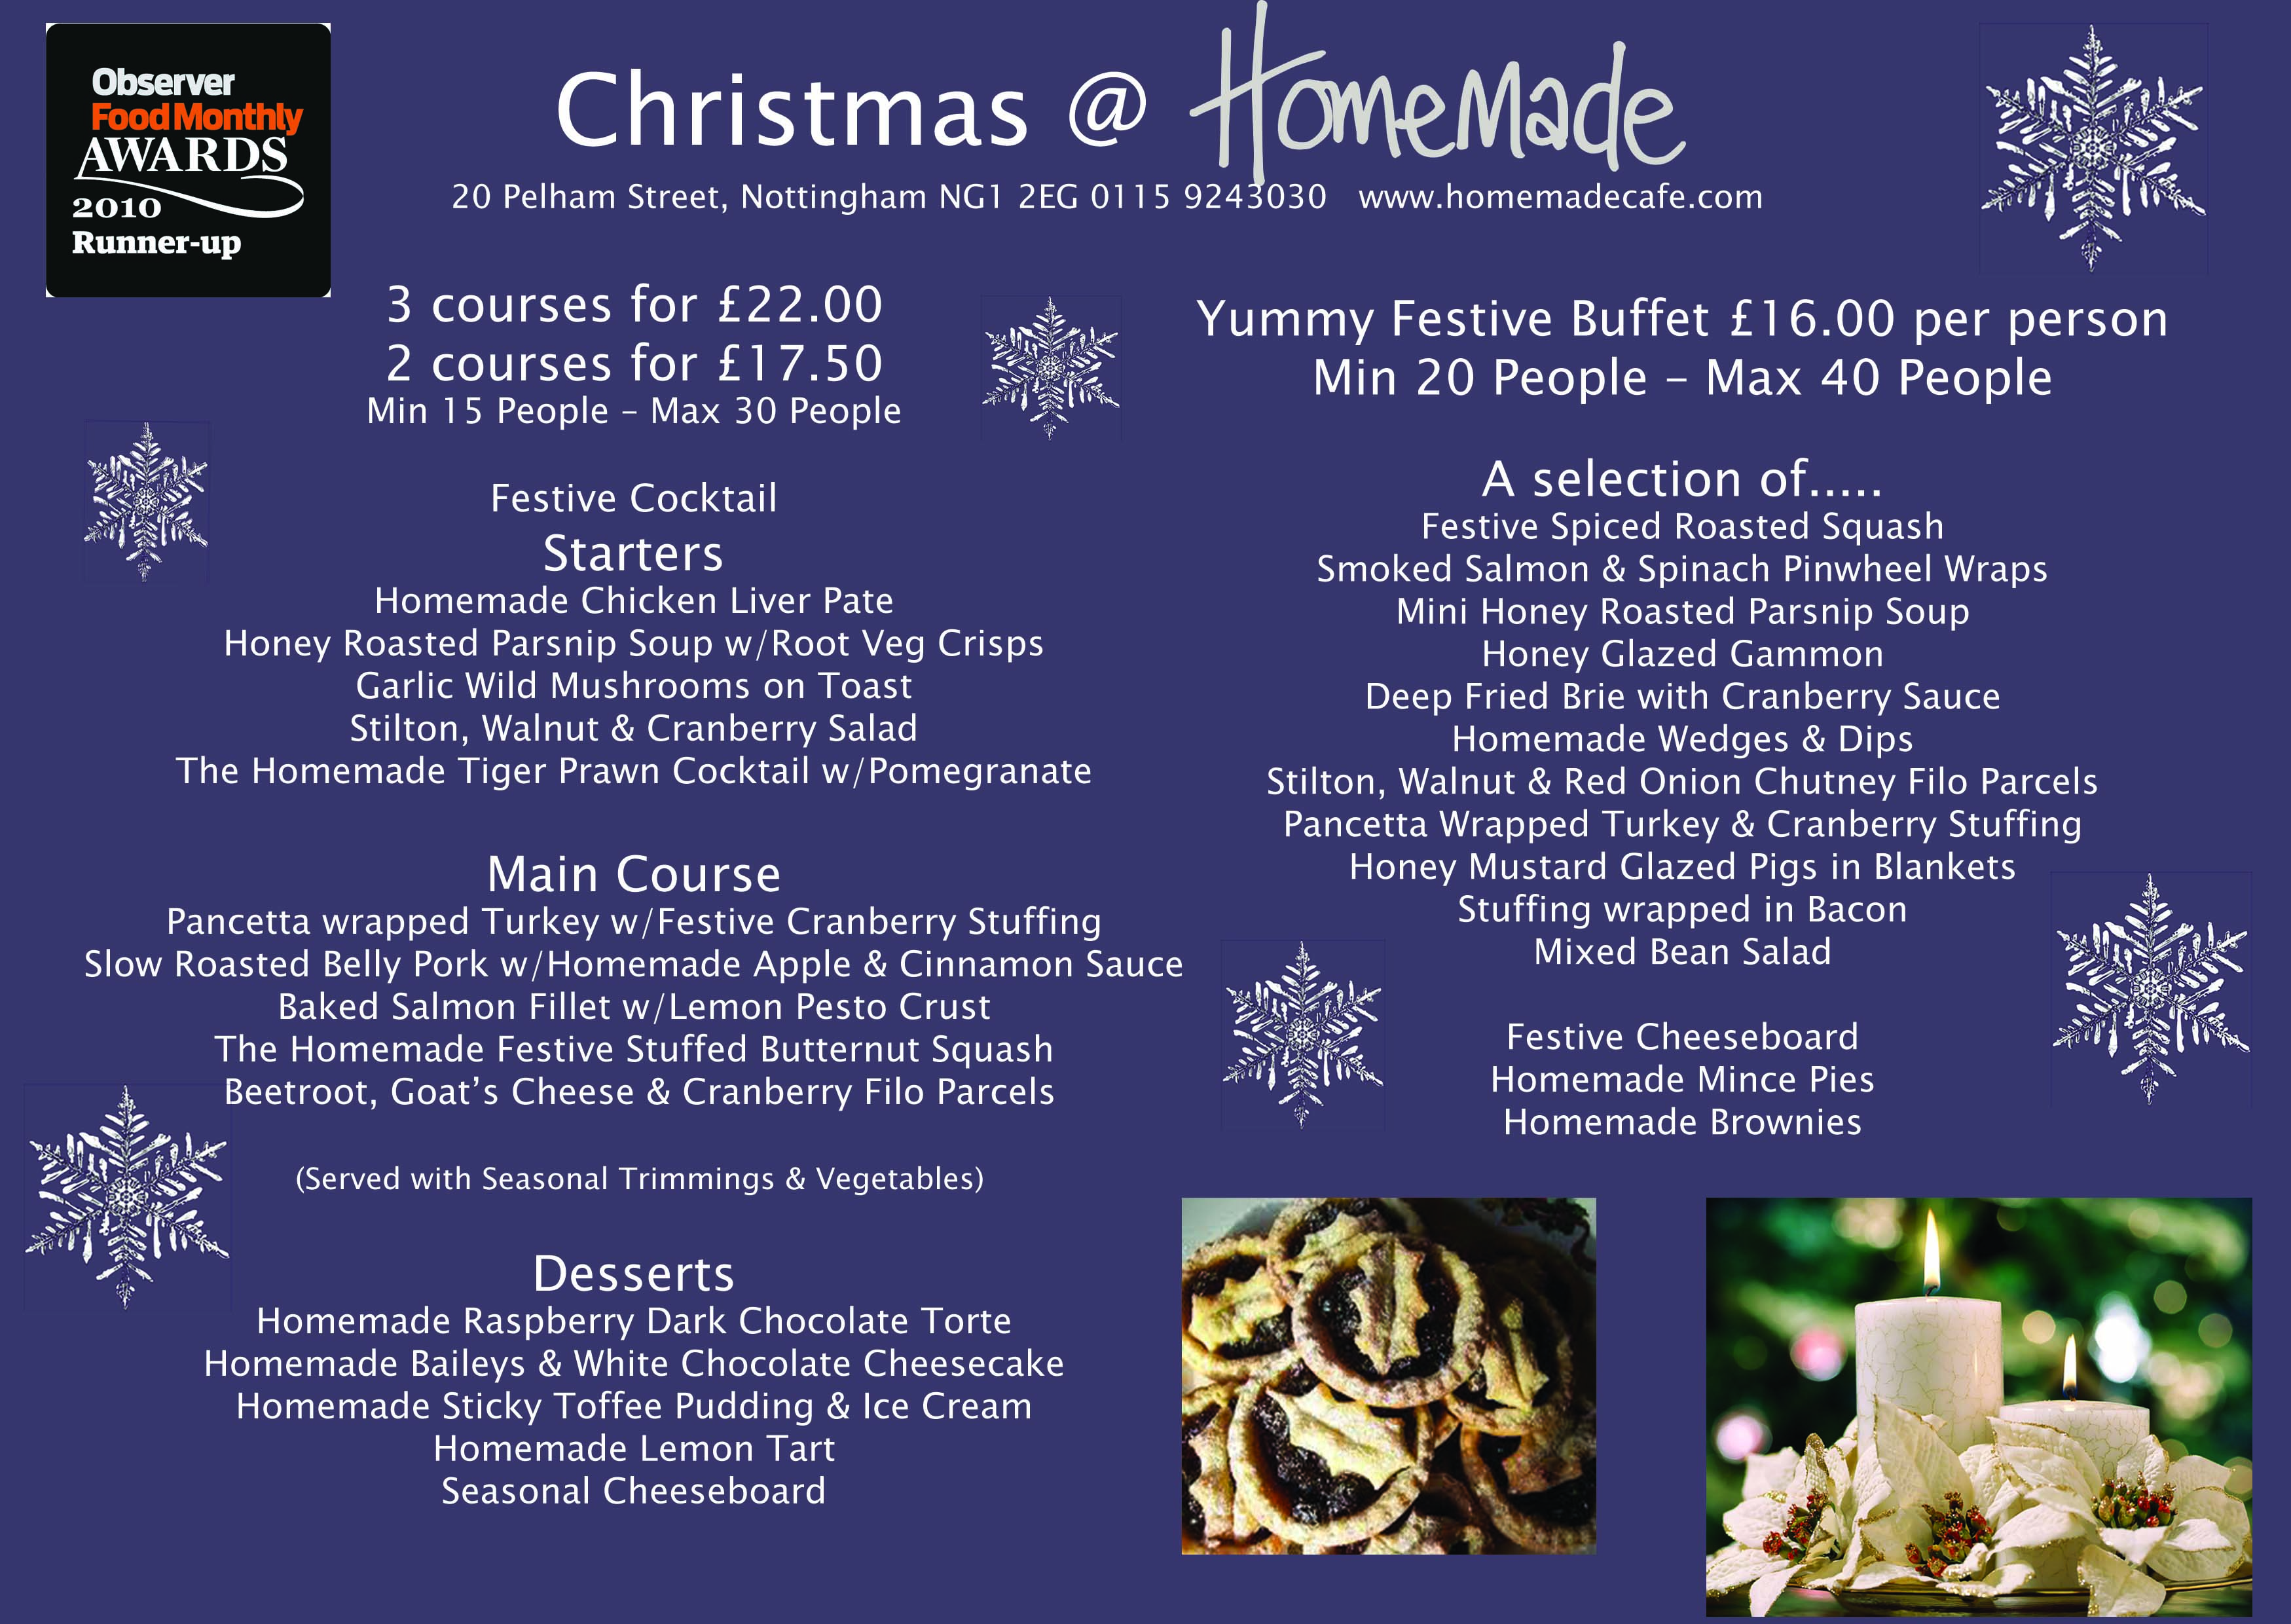 Homemade Christmas Menu 2012